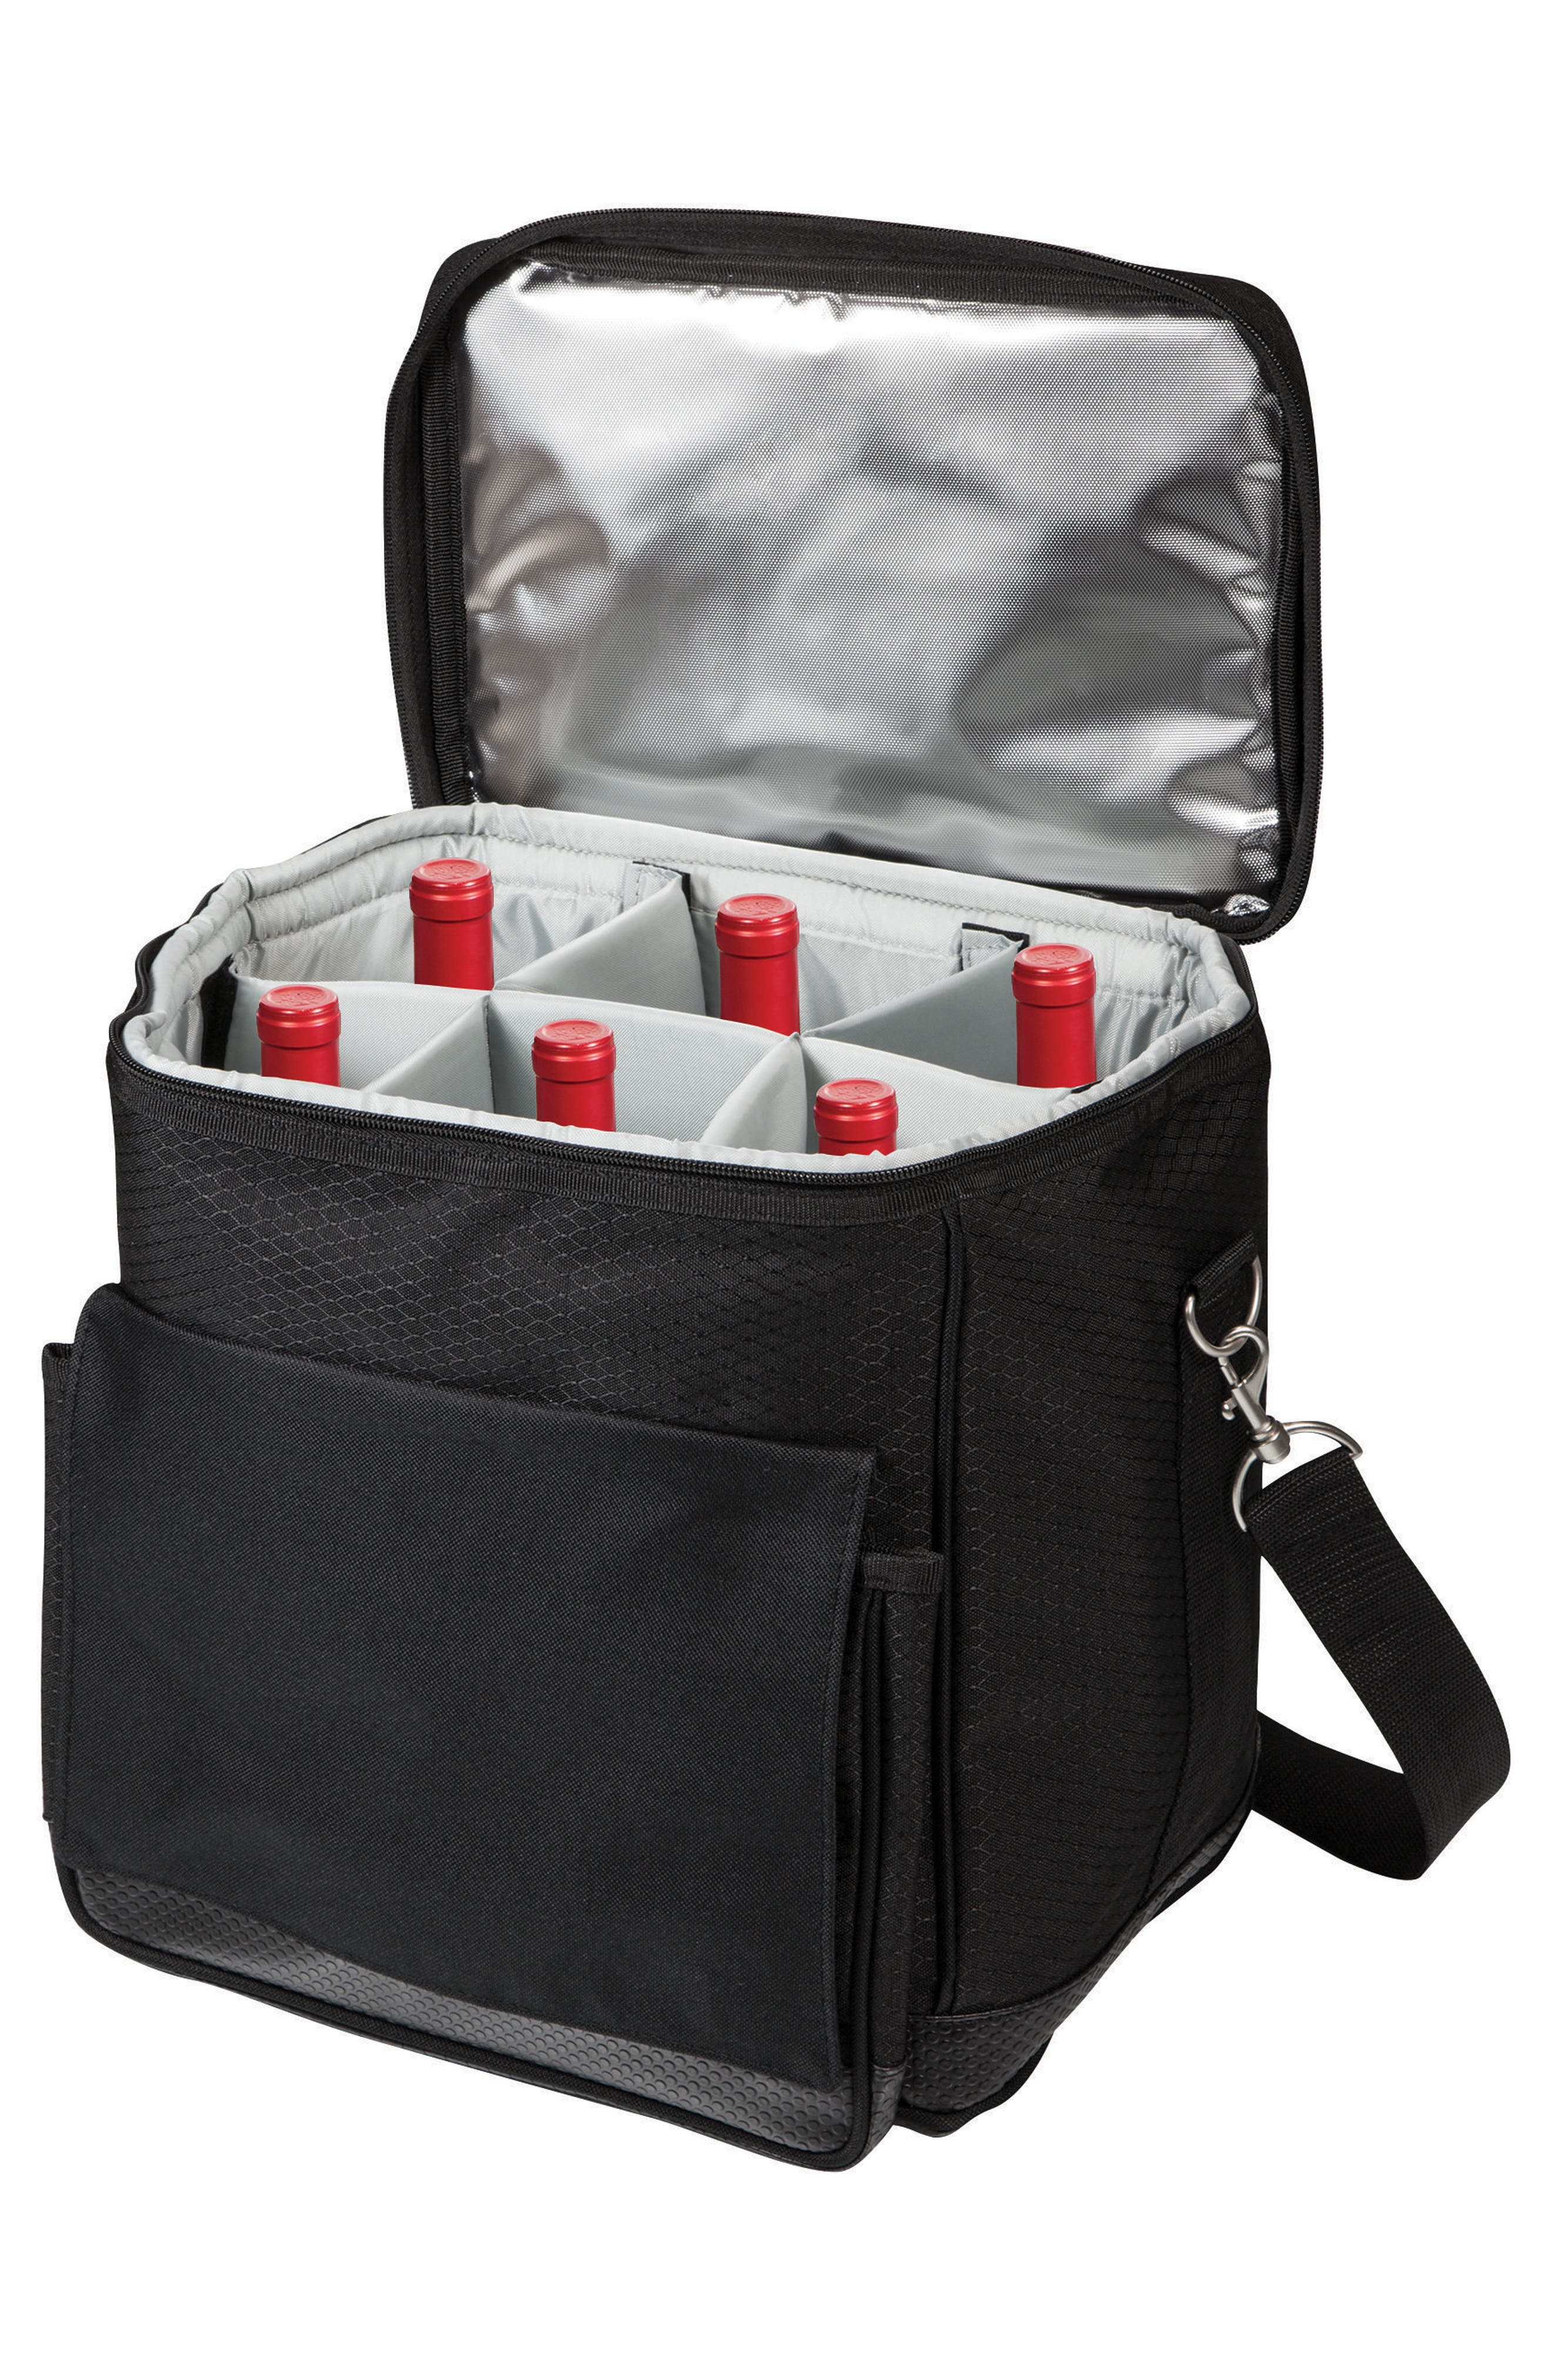 Alternate Image 3  - Picnic Time Cellar 6-Bottle Wine Cooler with Trolley